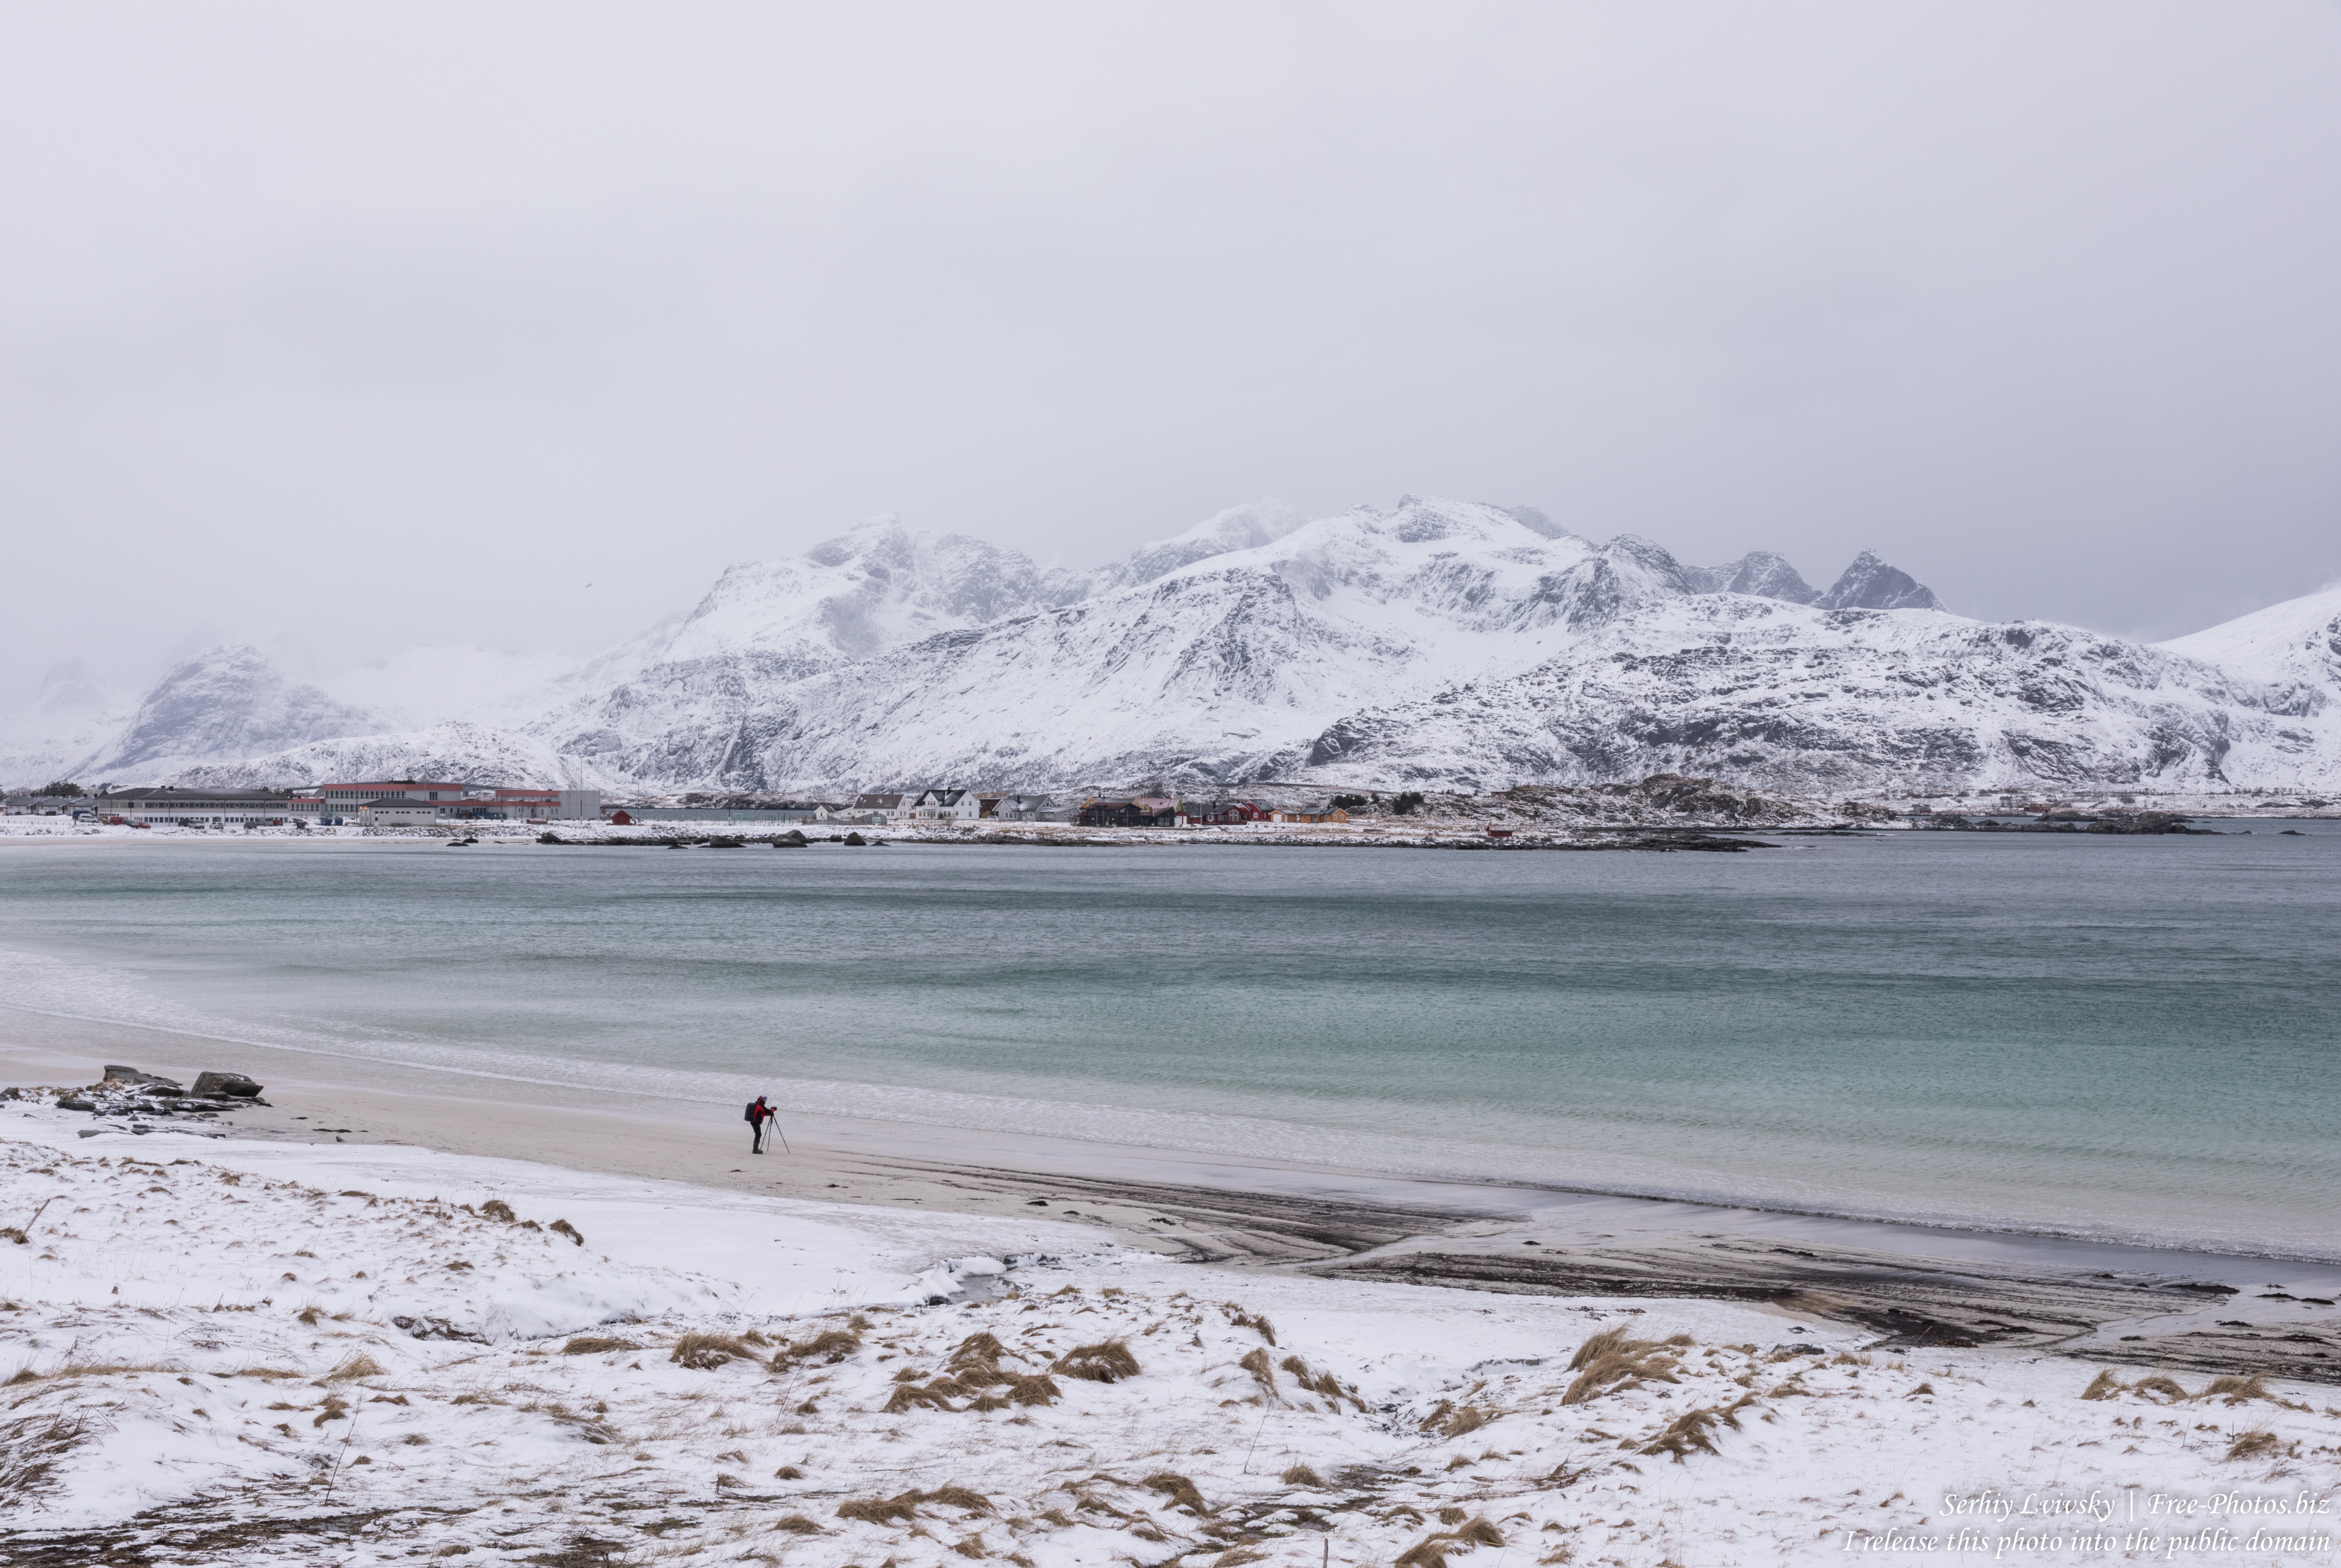 ramberg_beach_norway_in_february_2020_by_serhiy_lvivsky_06